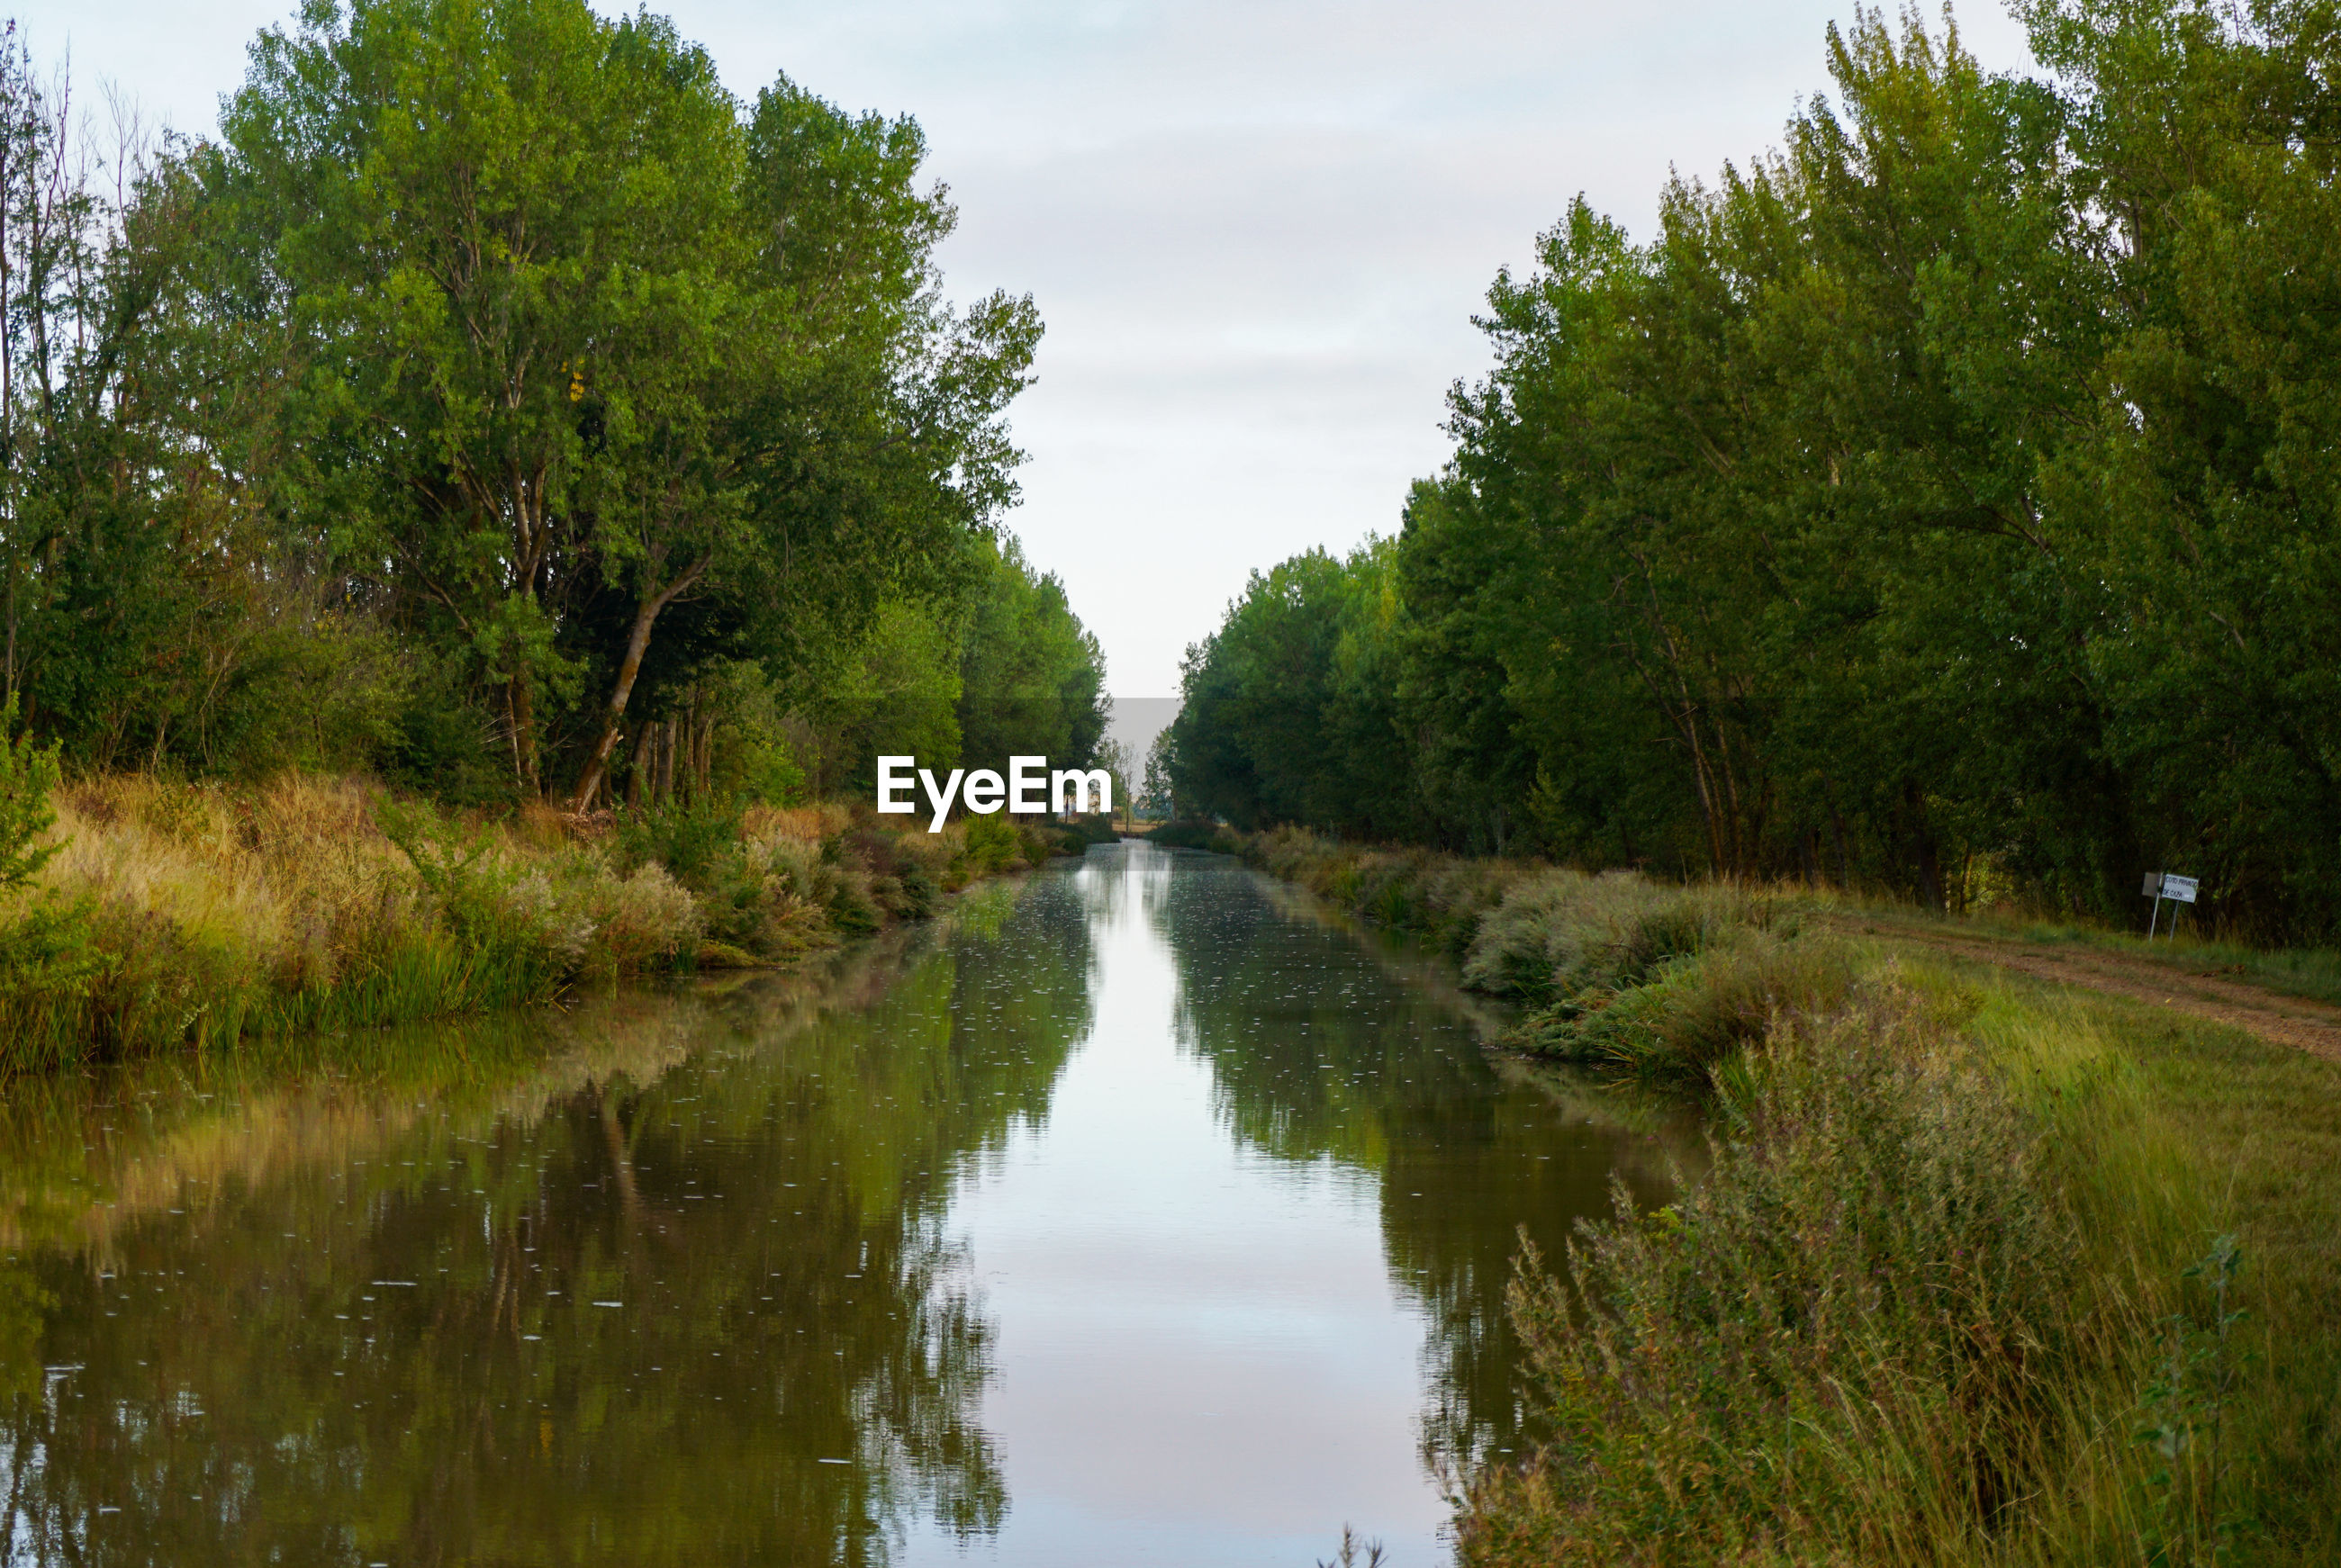 RIVER AMIDST TREES AGAINST SKY